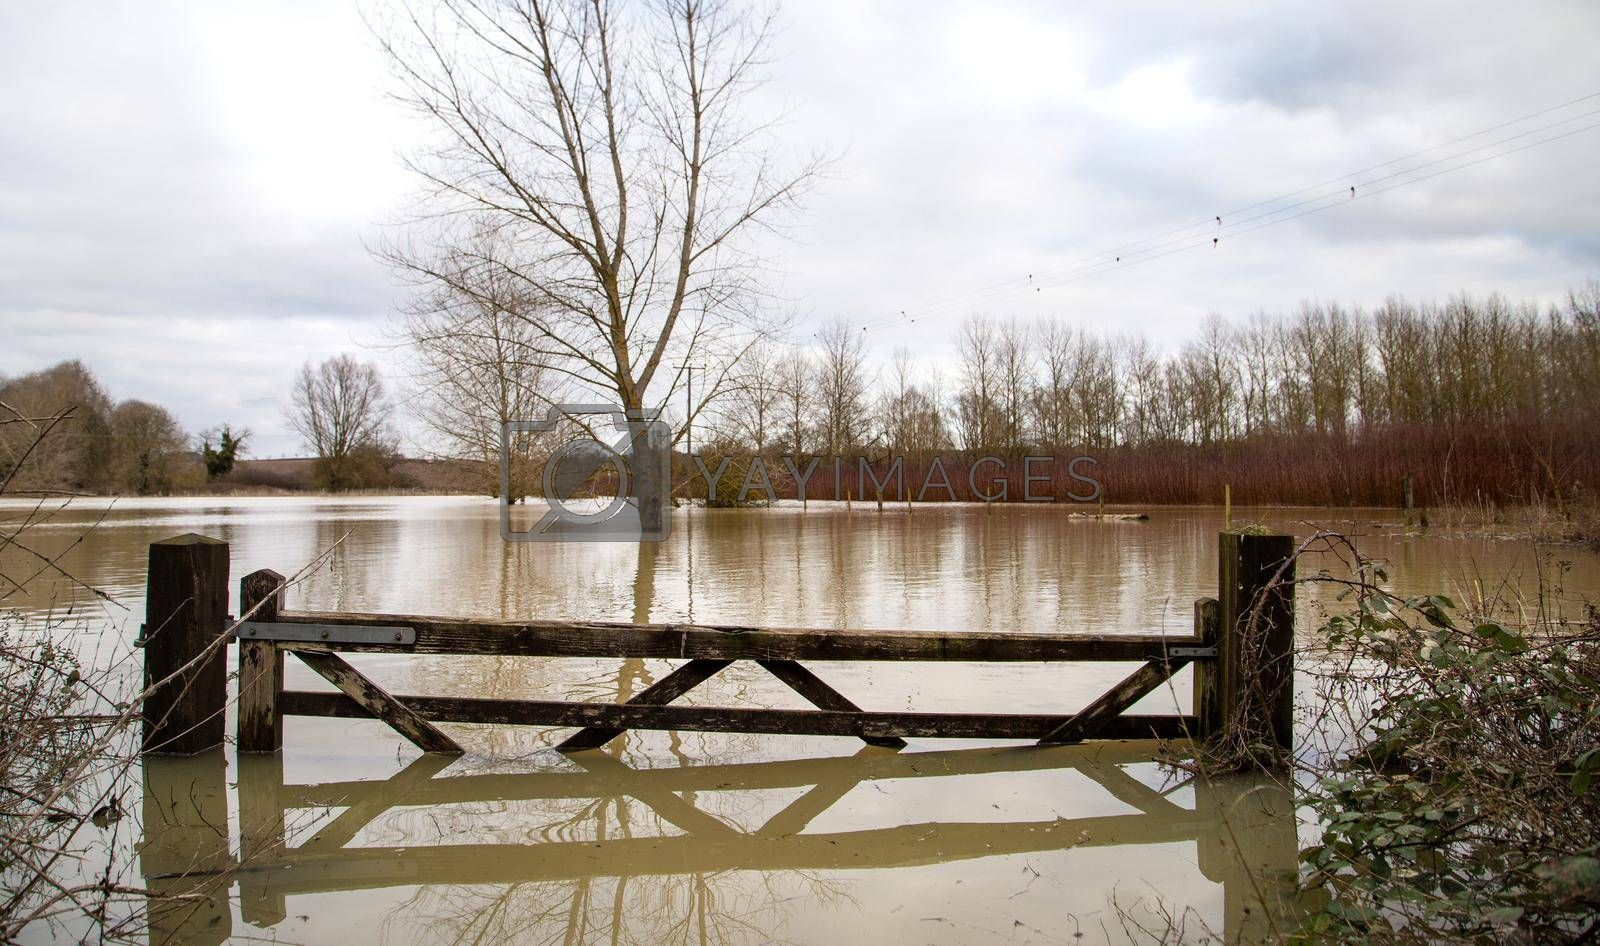 Flooded agricultural farm fields with wooden gate, sky, reflection in water, soaked field. High water in spring, UK, Suffolk spring 2021